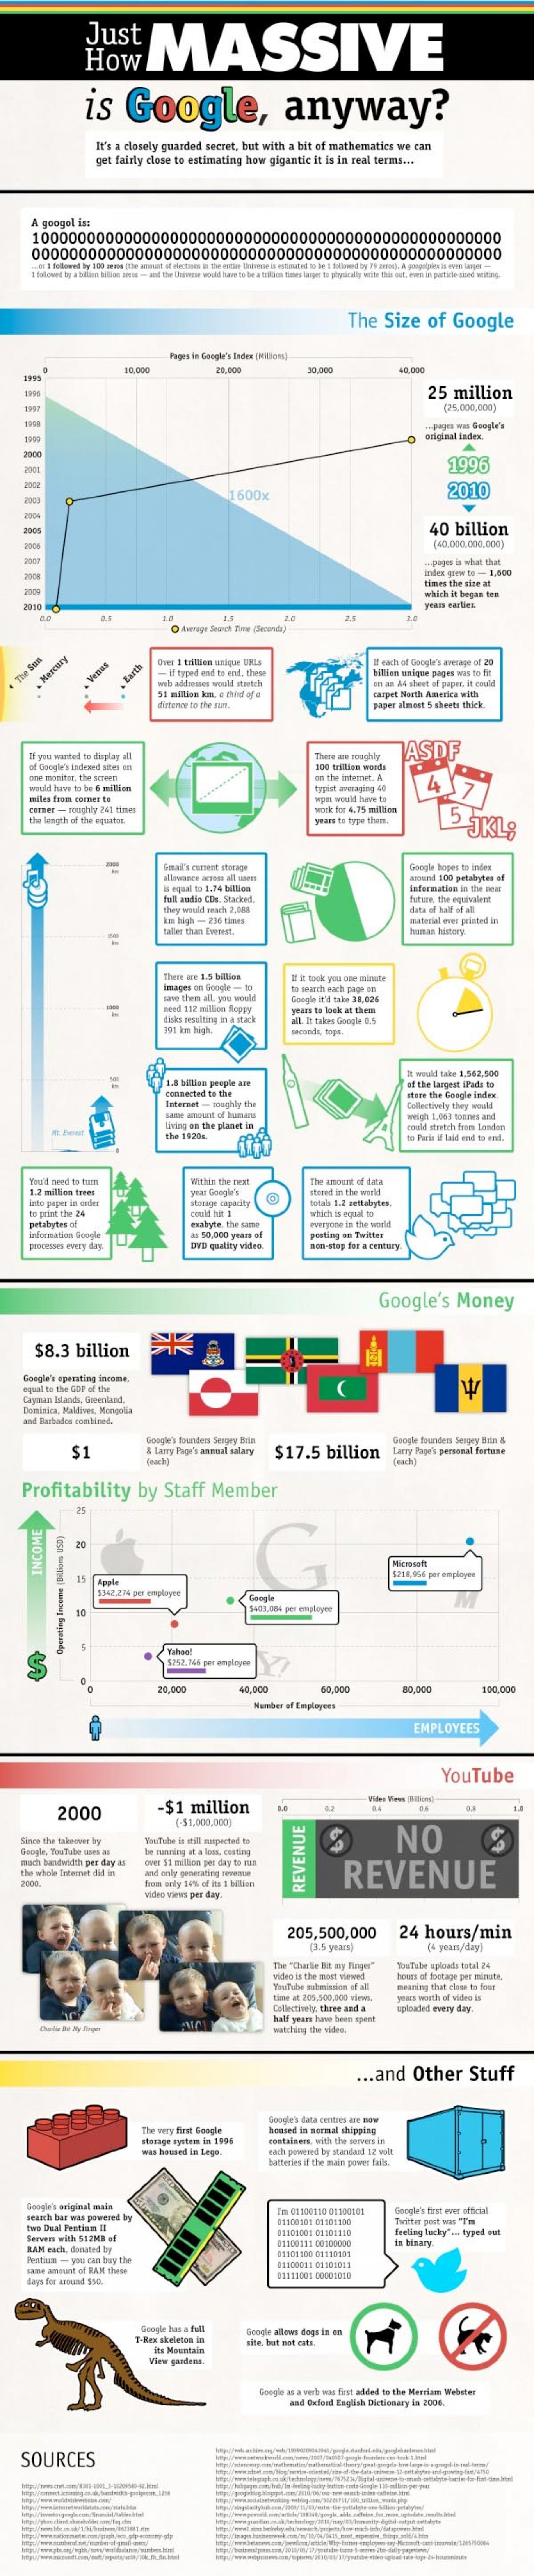 Just How Massive is Google Anyway? Infographic